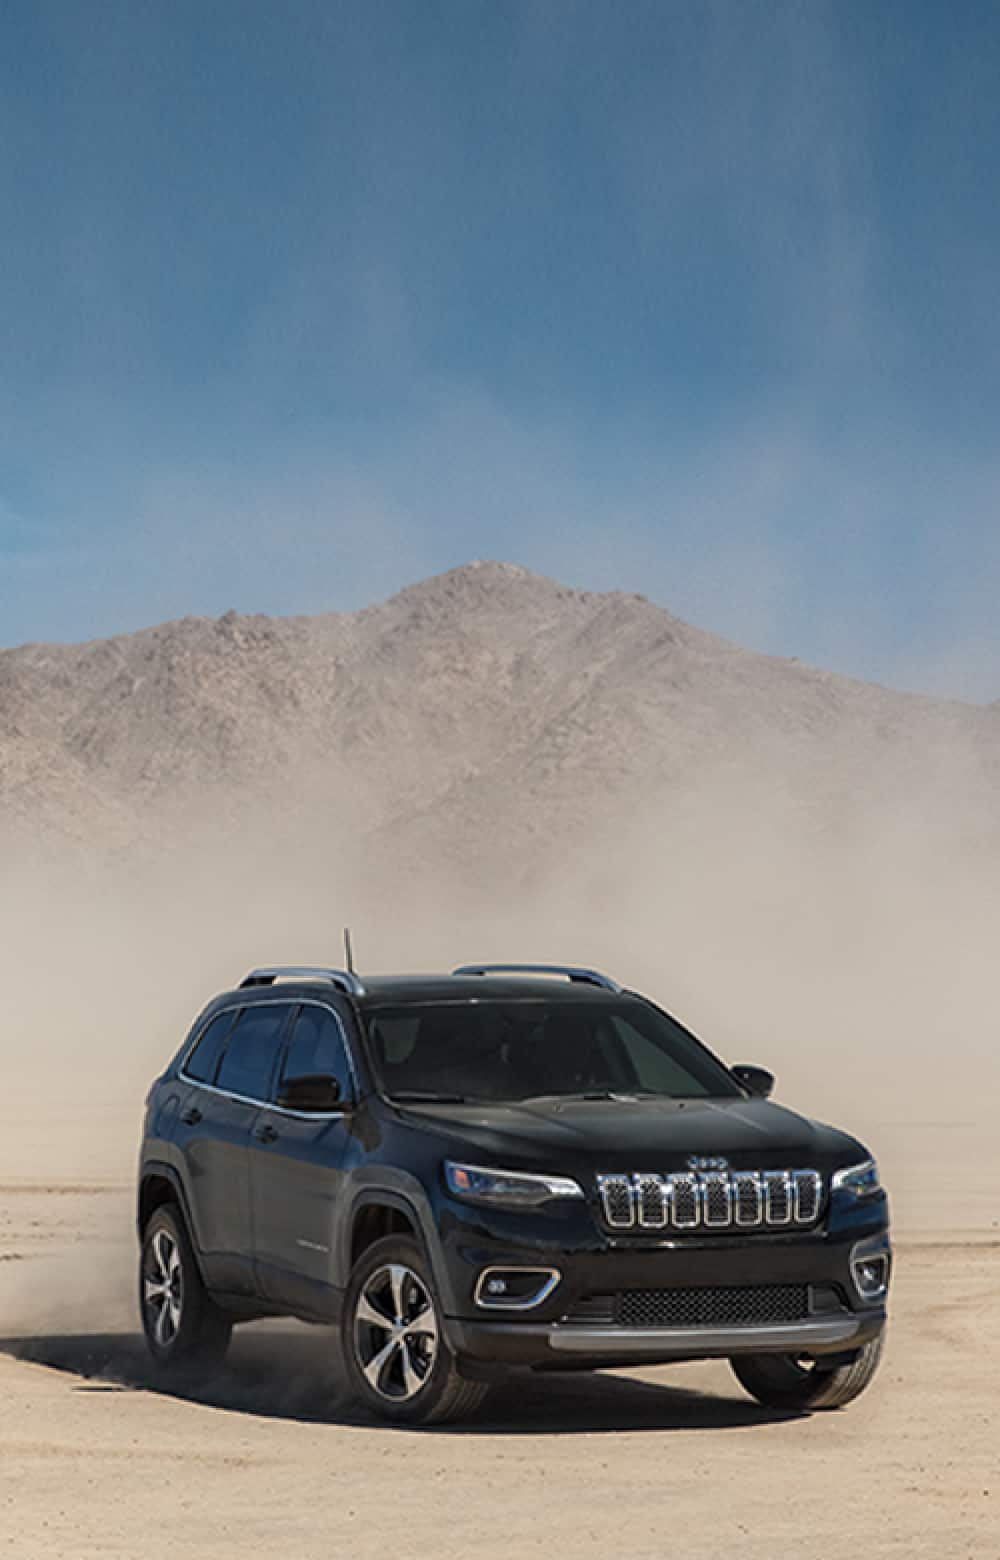 2019 Jeep® Cherokee - Discover New Adventures In Style